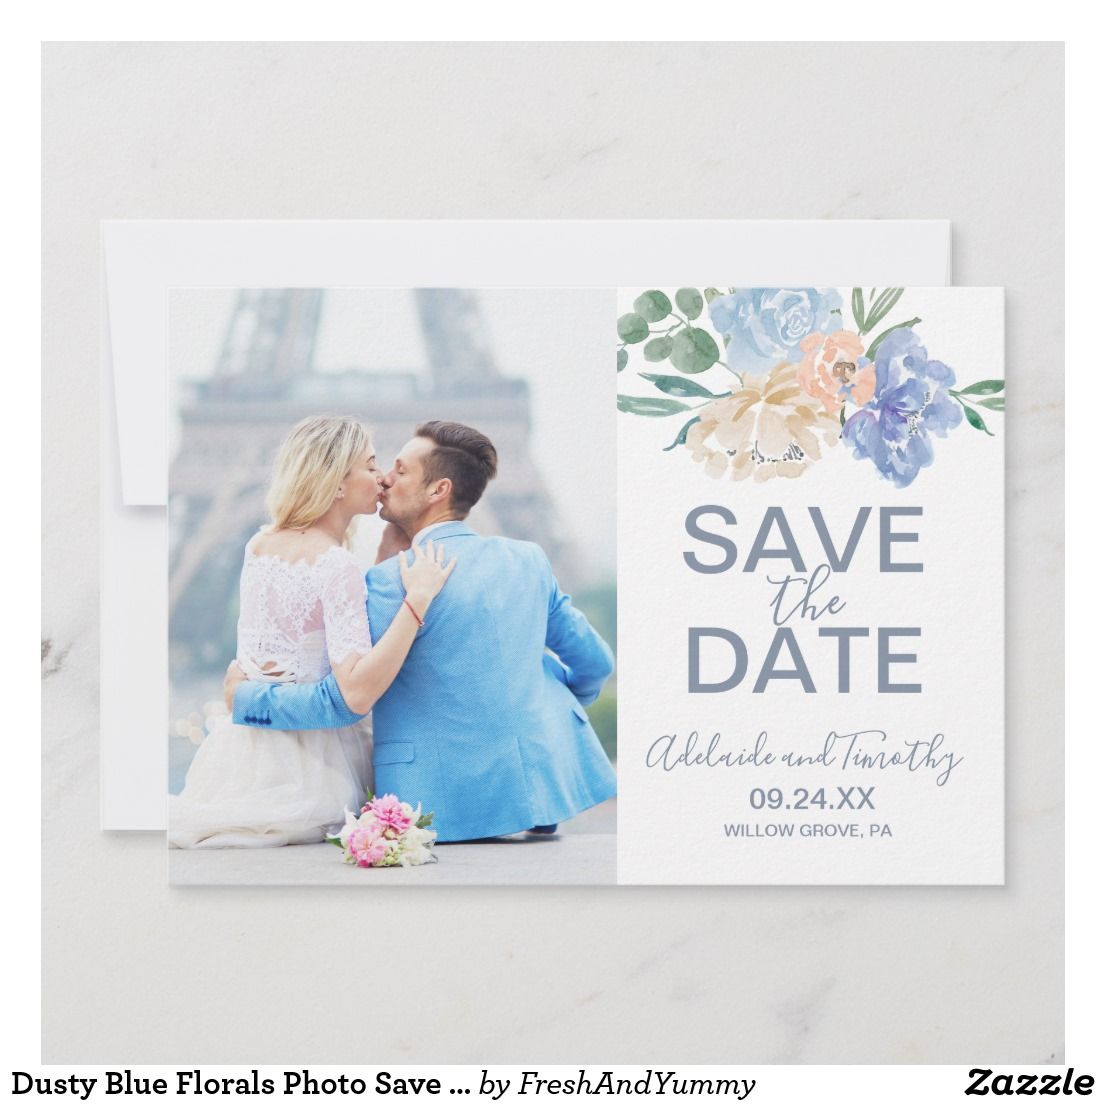 Dusty Blue Florals Photo Save the Date Card | Zazzle.com #bluepeonies